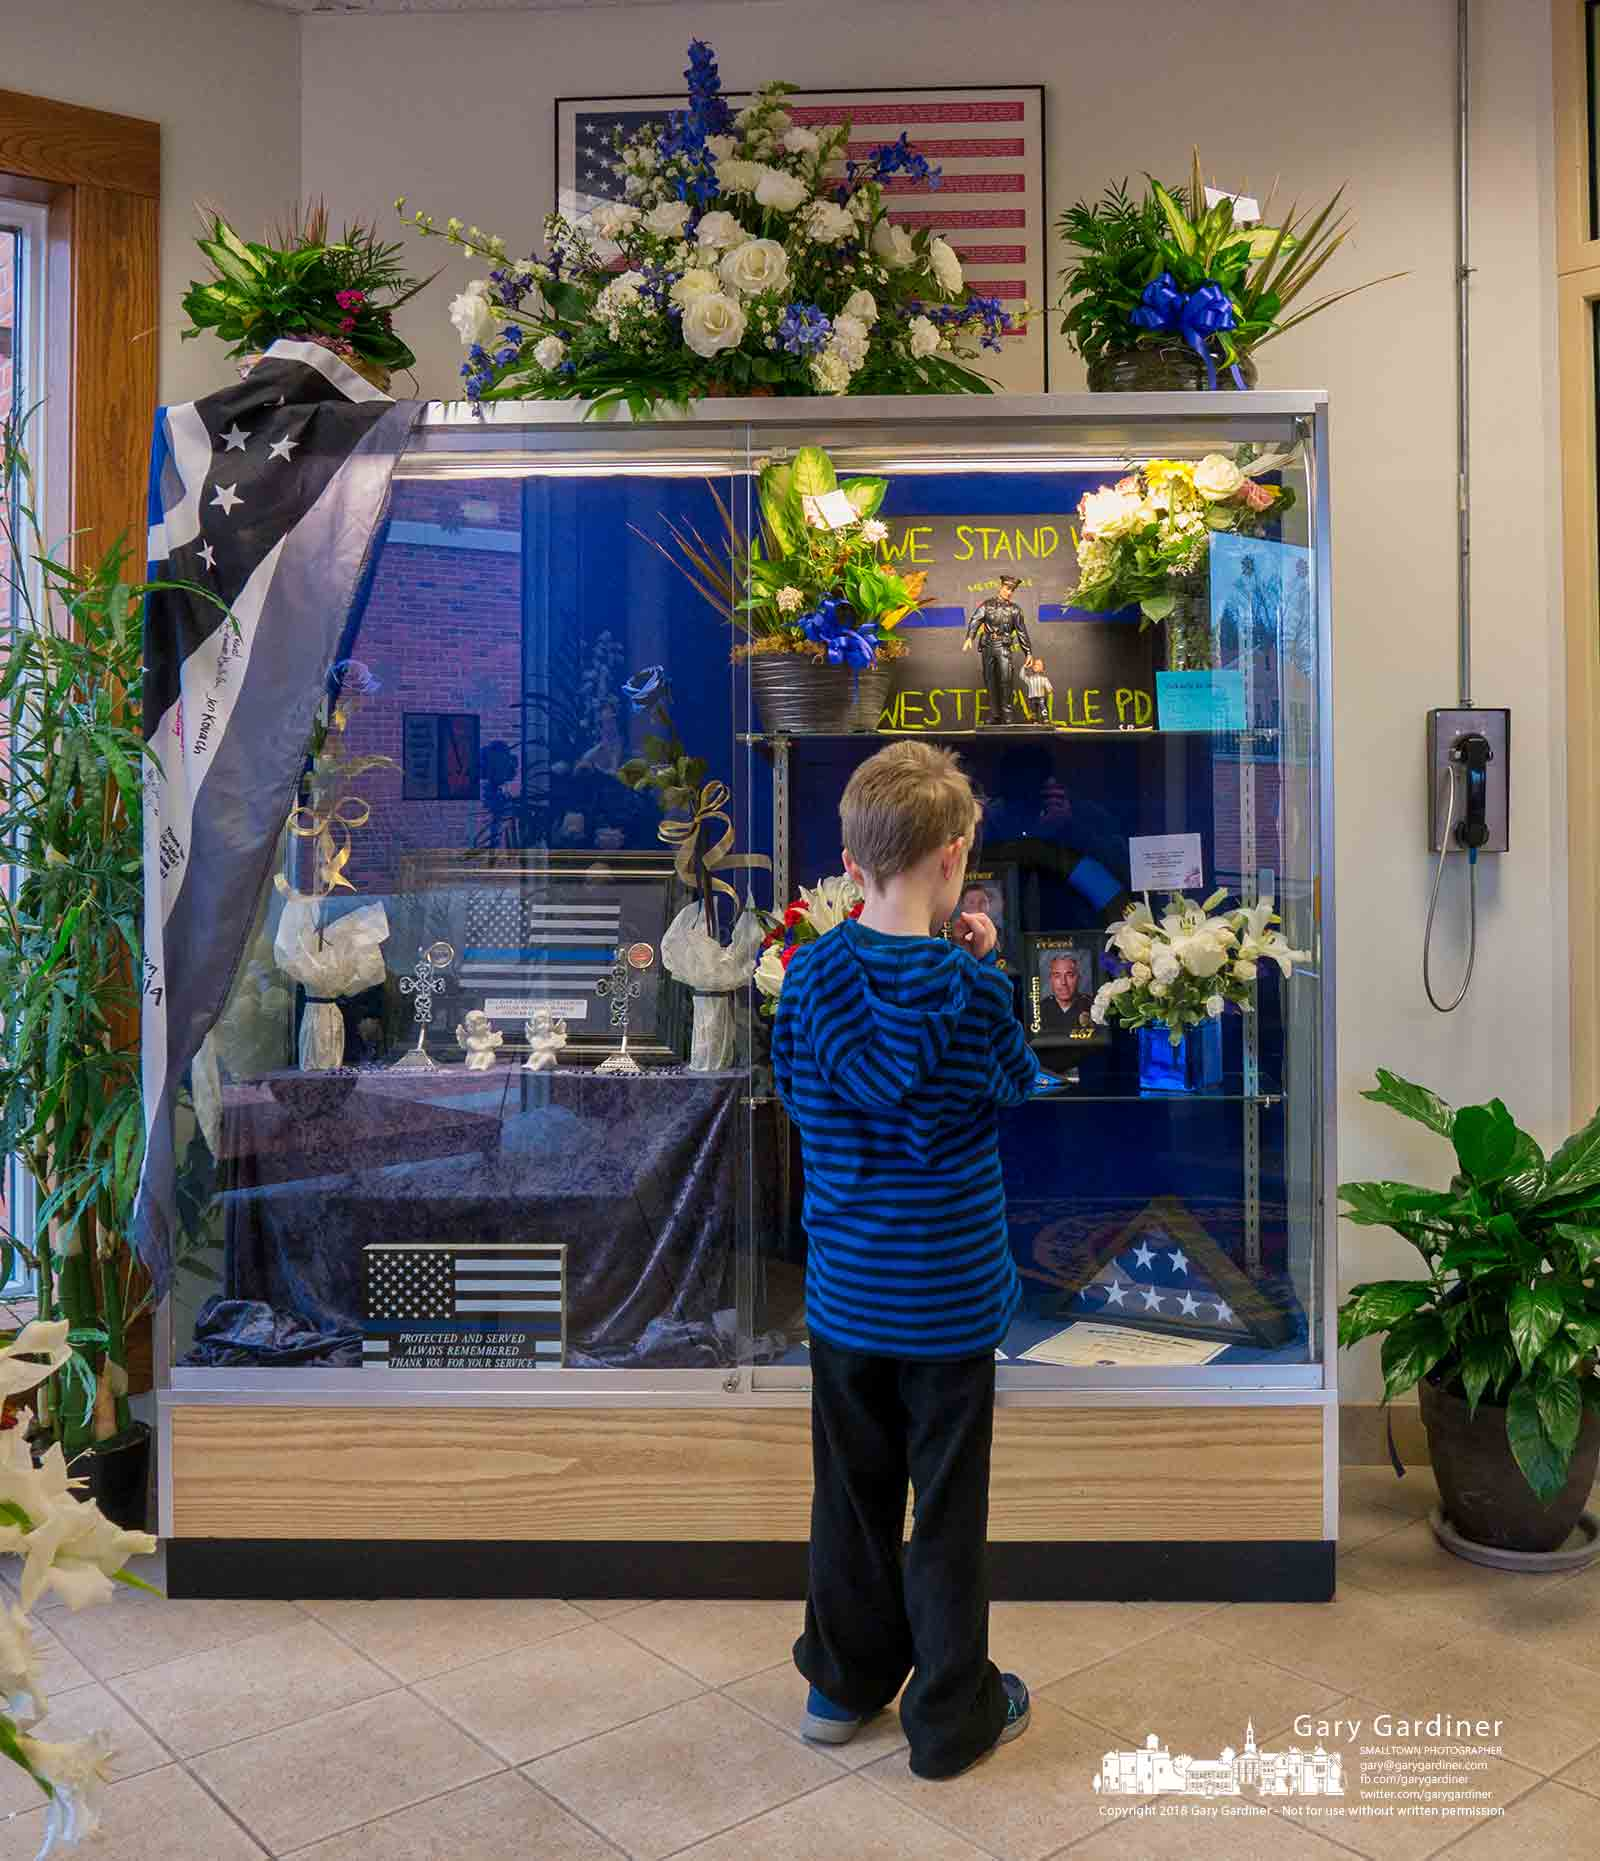 A young boy stands in front of the lobby memorial for Westerville Police Officers Eric Joering and Tony Morelli where two flags from the Capitol Police that flew over the US Capitol Buildingwere added. My Final Photo for Feb. 21, 2018.